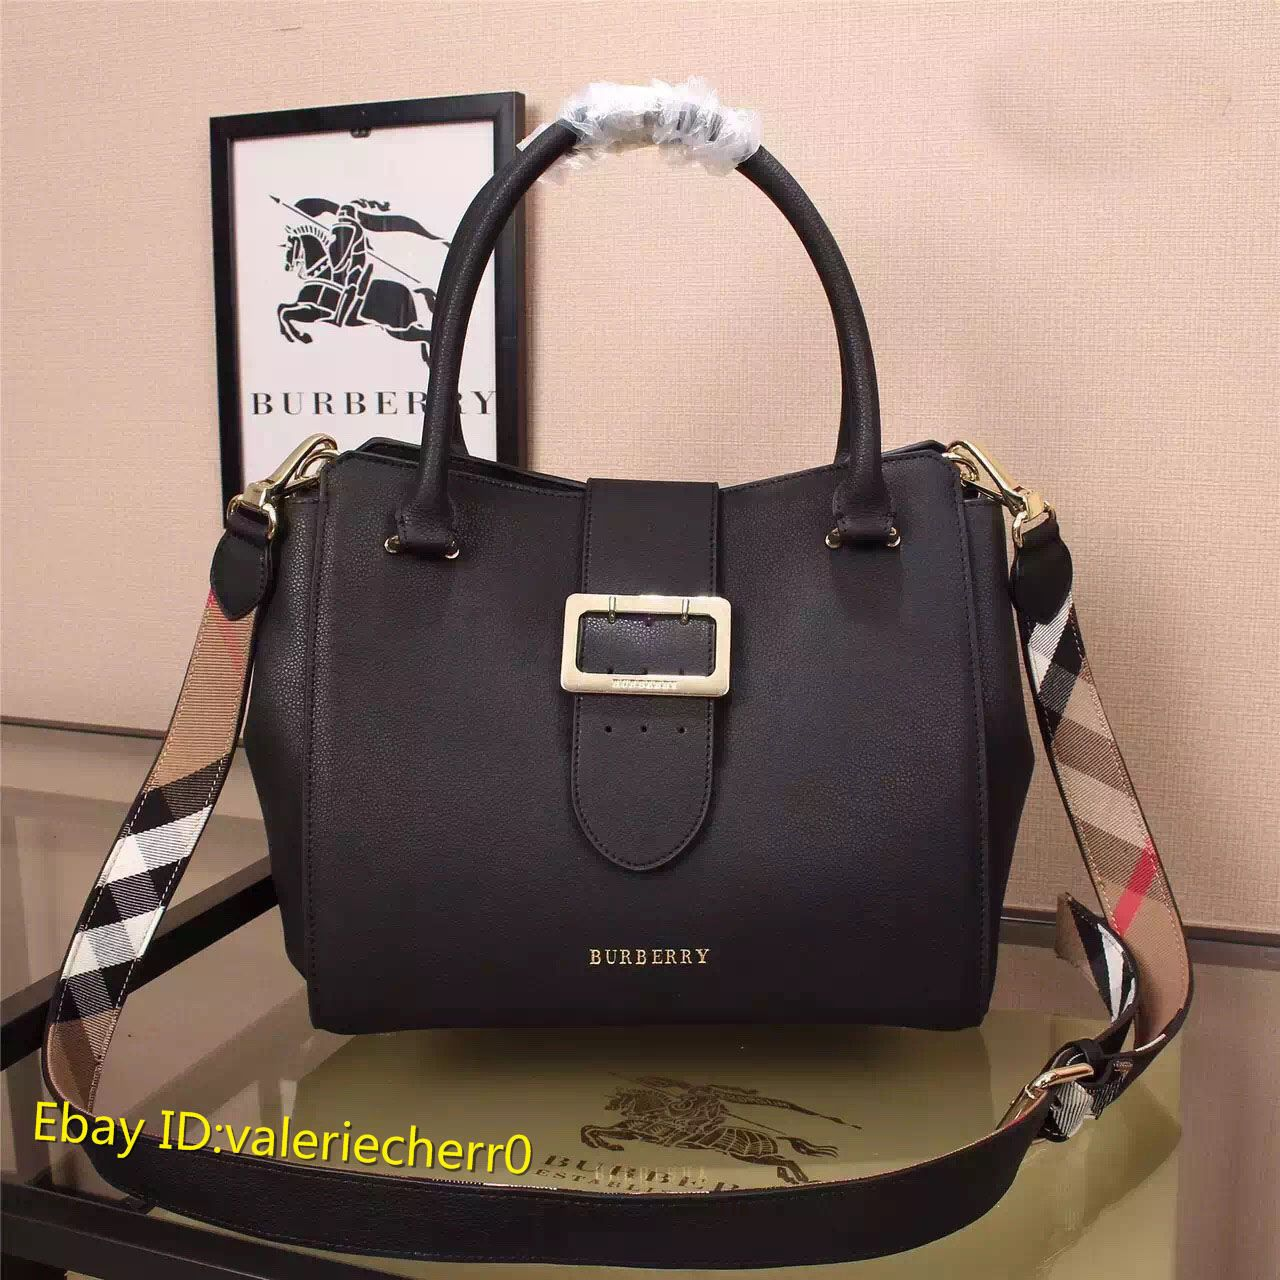 dcd108a48e3 Authentic New Burberry Buckle Medium 30cm Grain Leather Shoulder bag In  Black  495.0